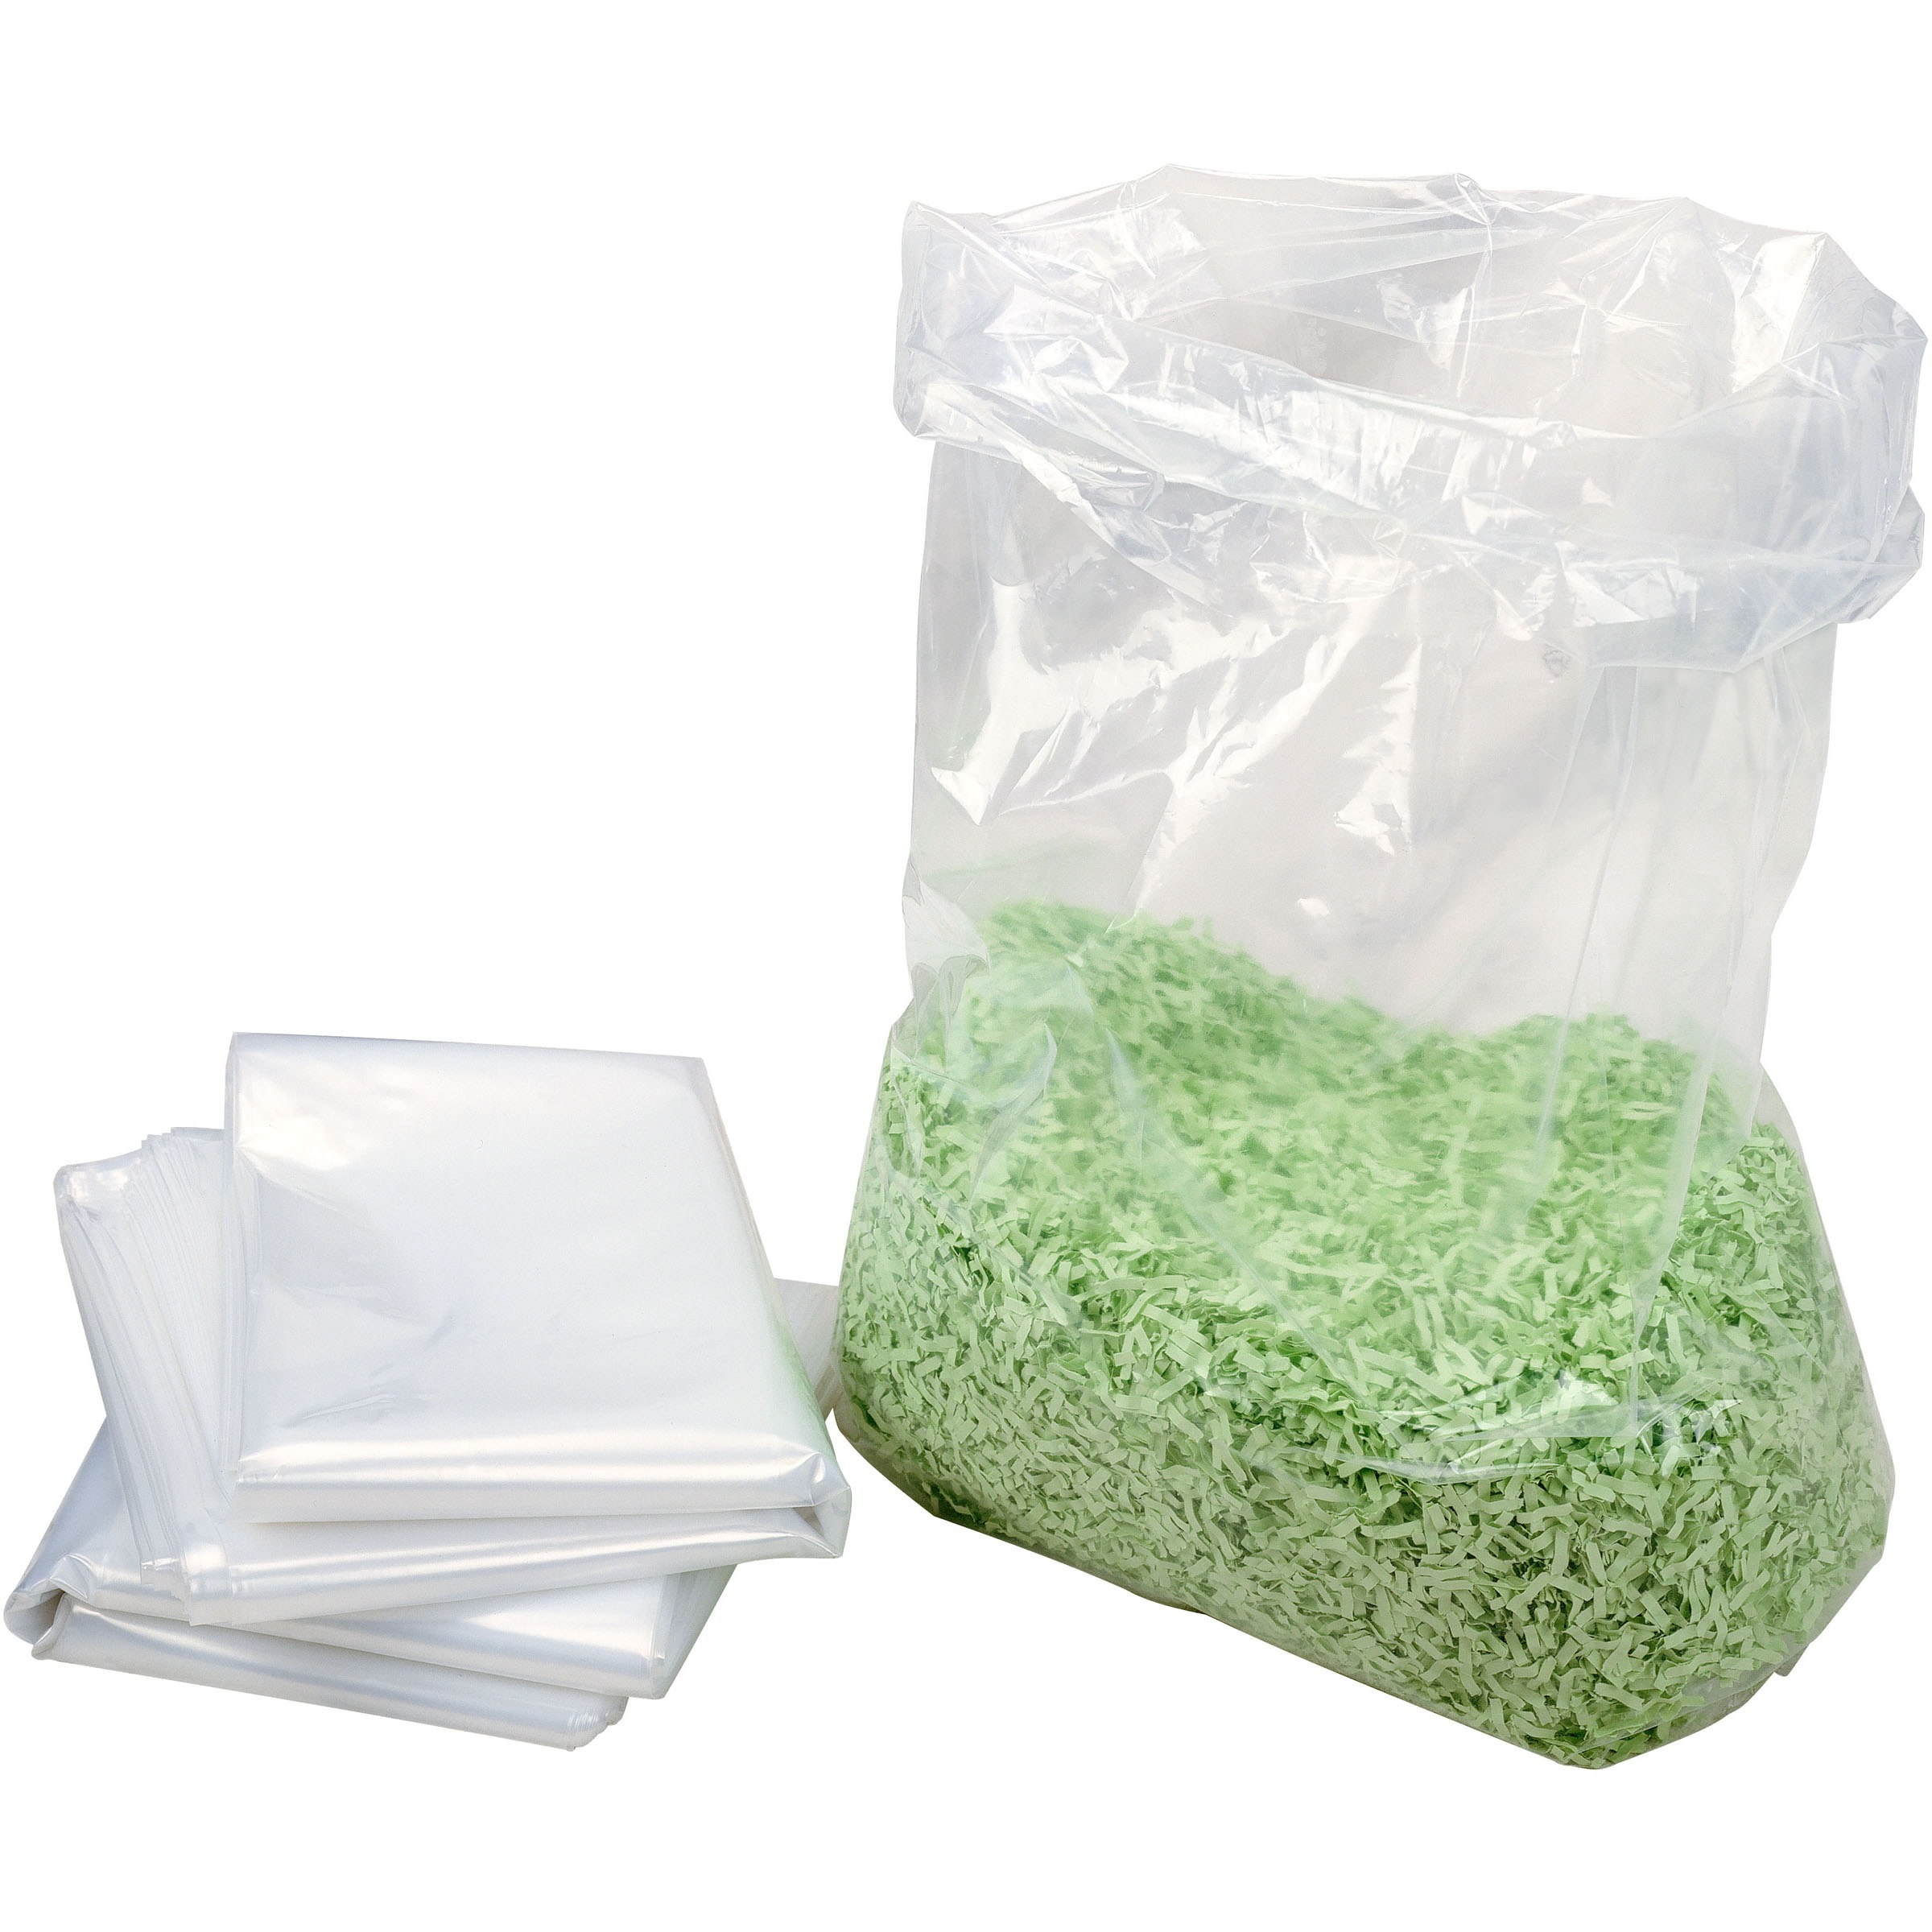 HSM, HSM1408, 13-gallon Shredder Bags, 100 / Carton, Clear, 13 gal